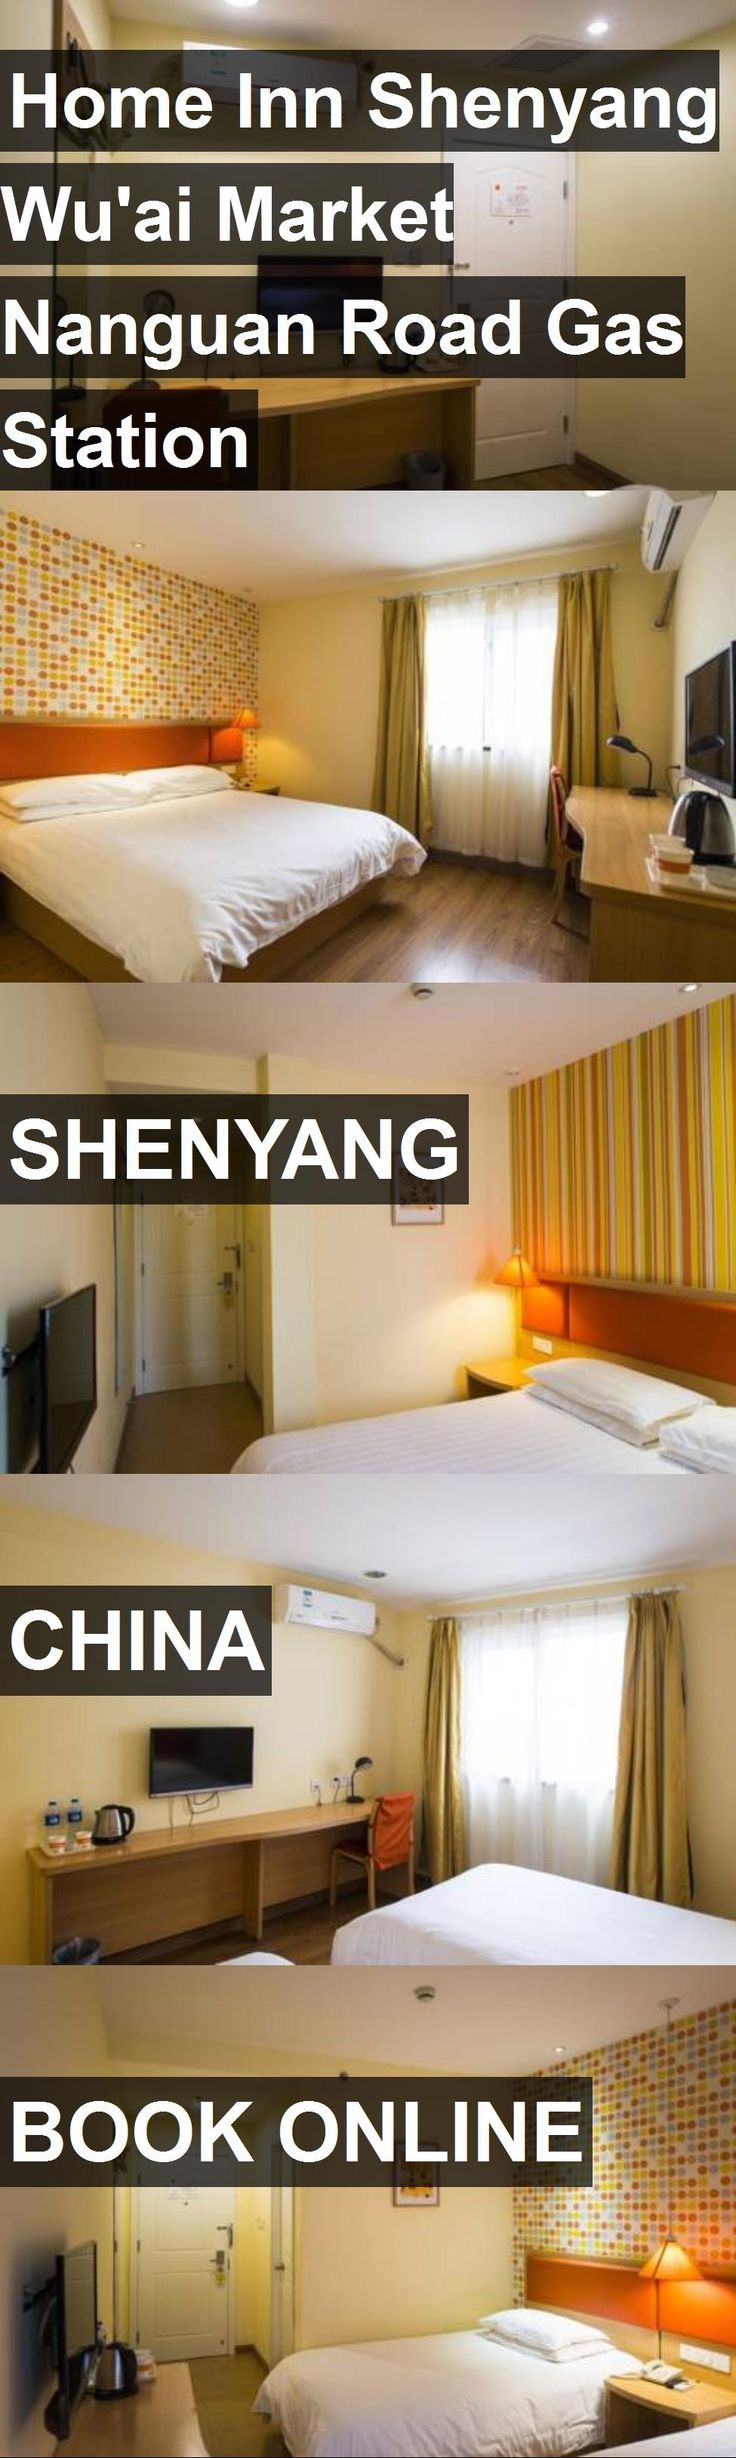 Hotel Home Inn Shenyang Wu'ai Market Nanguan Road Gas Station in Shenyang, China. For more information, photos, reviews and best prices please follow the link. #China #Shenyang #hotel #travel #vacation